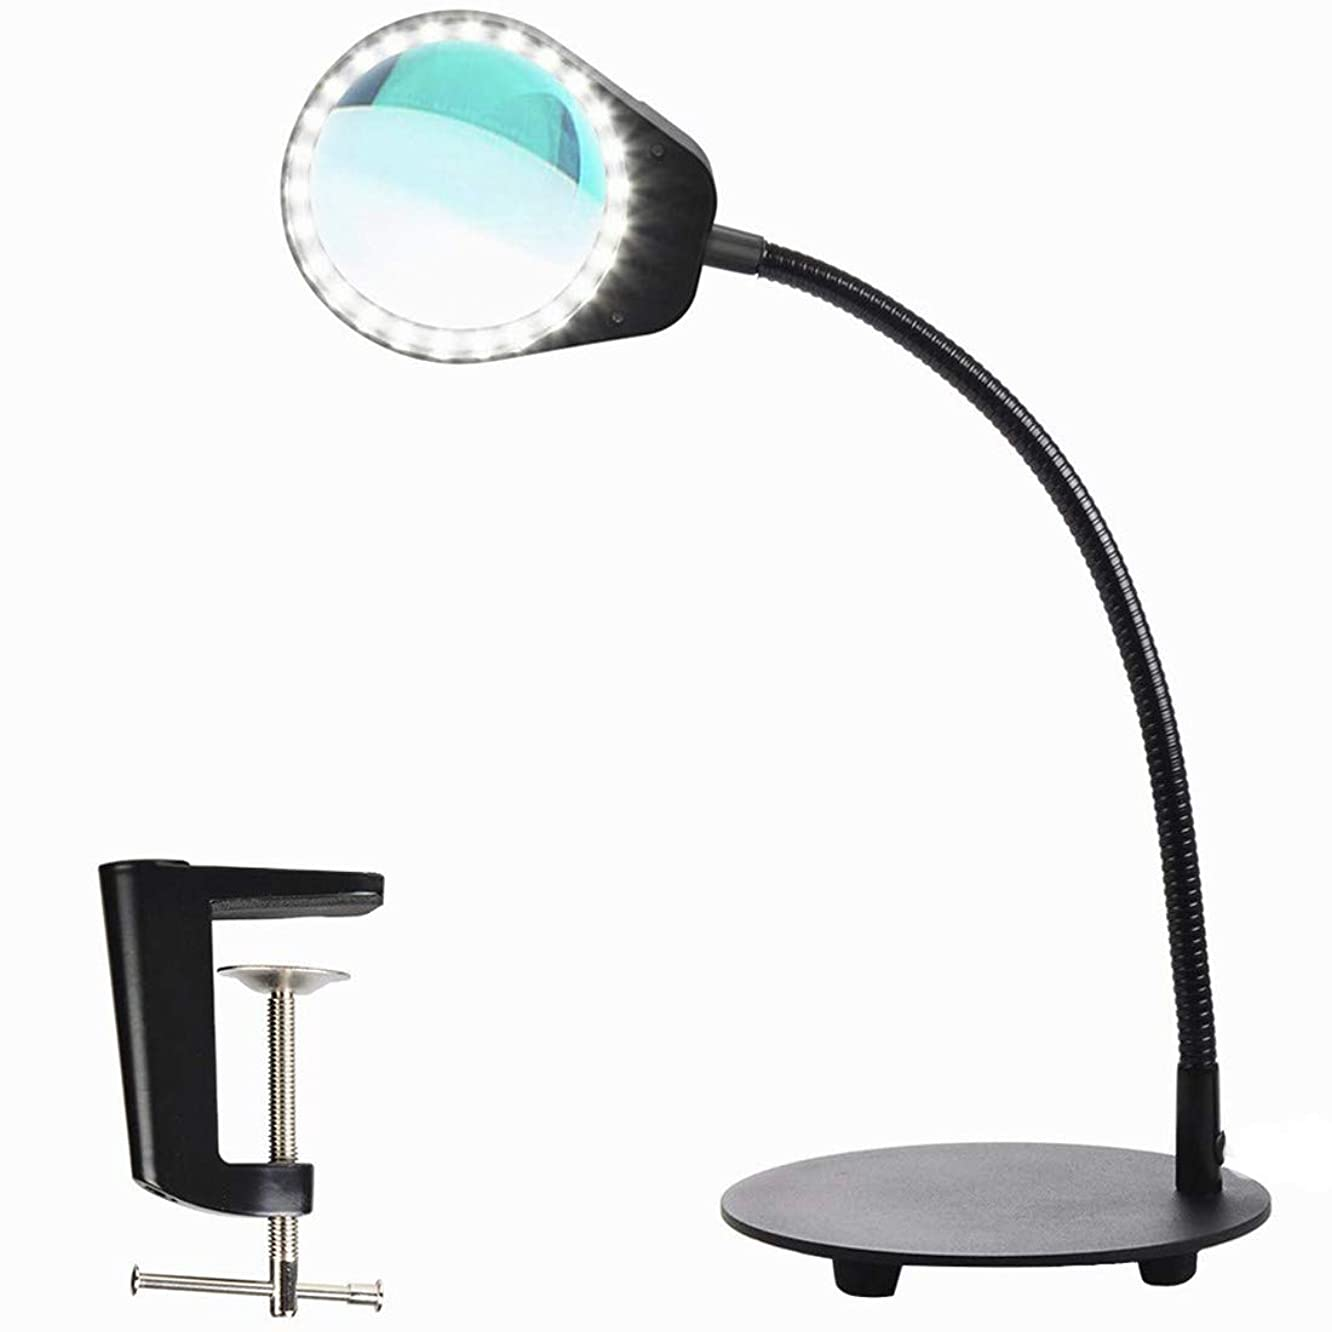 SODIAL Dimmable Magnifying Glass Desk Lamp-Hands Free,Daylight Lighted Magnifier With Stand & Clamp-Adjustable Gooseneck Led Table Light For Reading,Crafts,Workbench,Task,Black